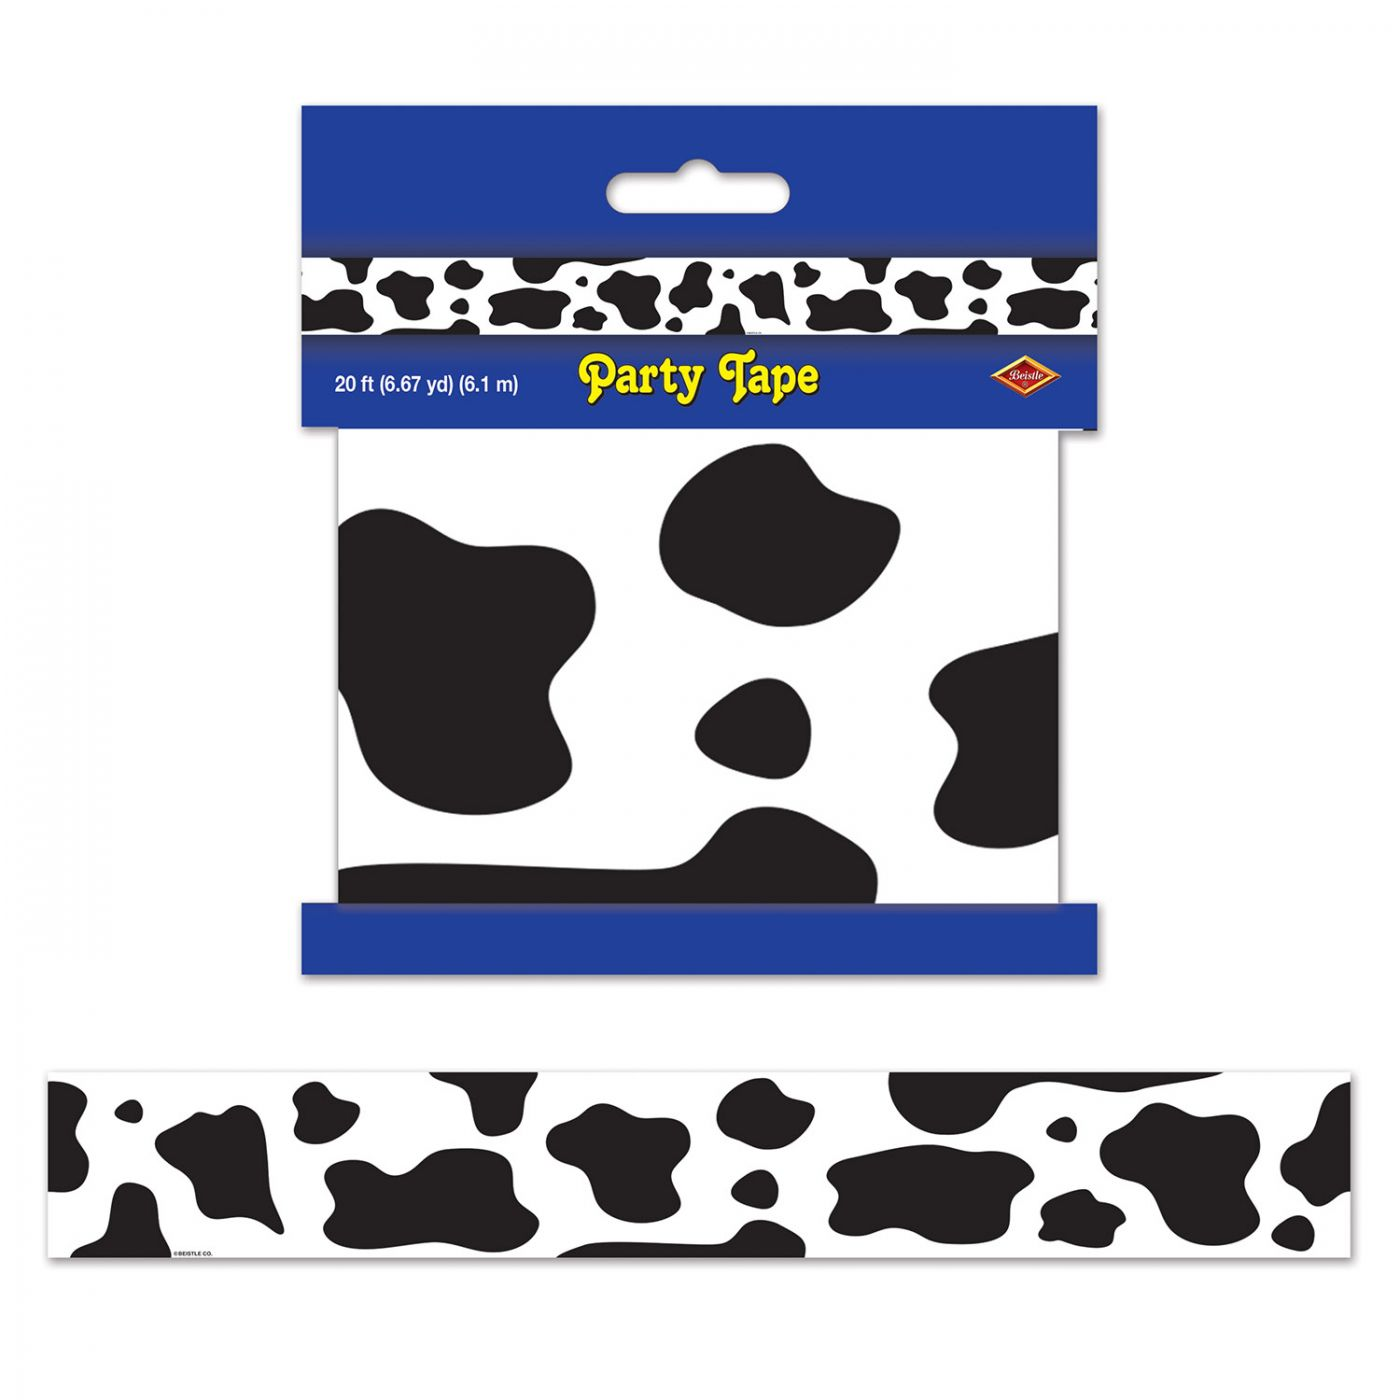 Cow Print Party Tape image